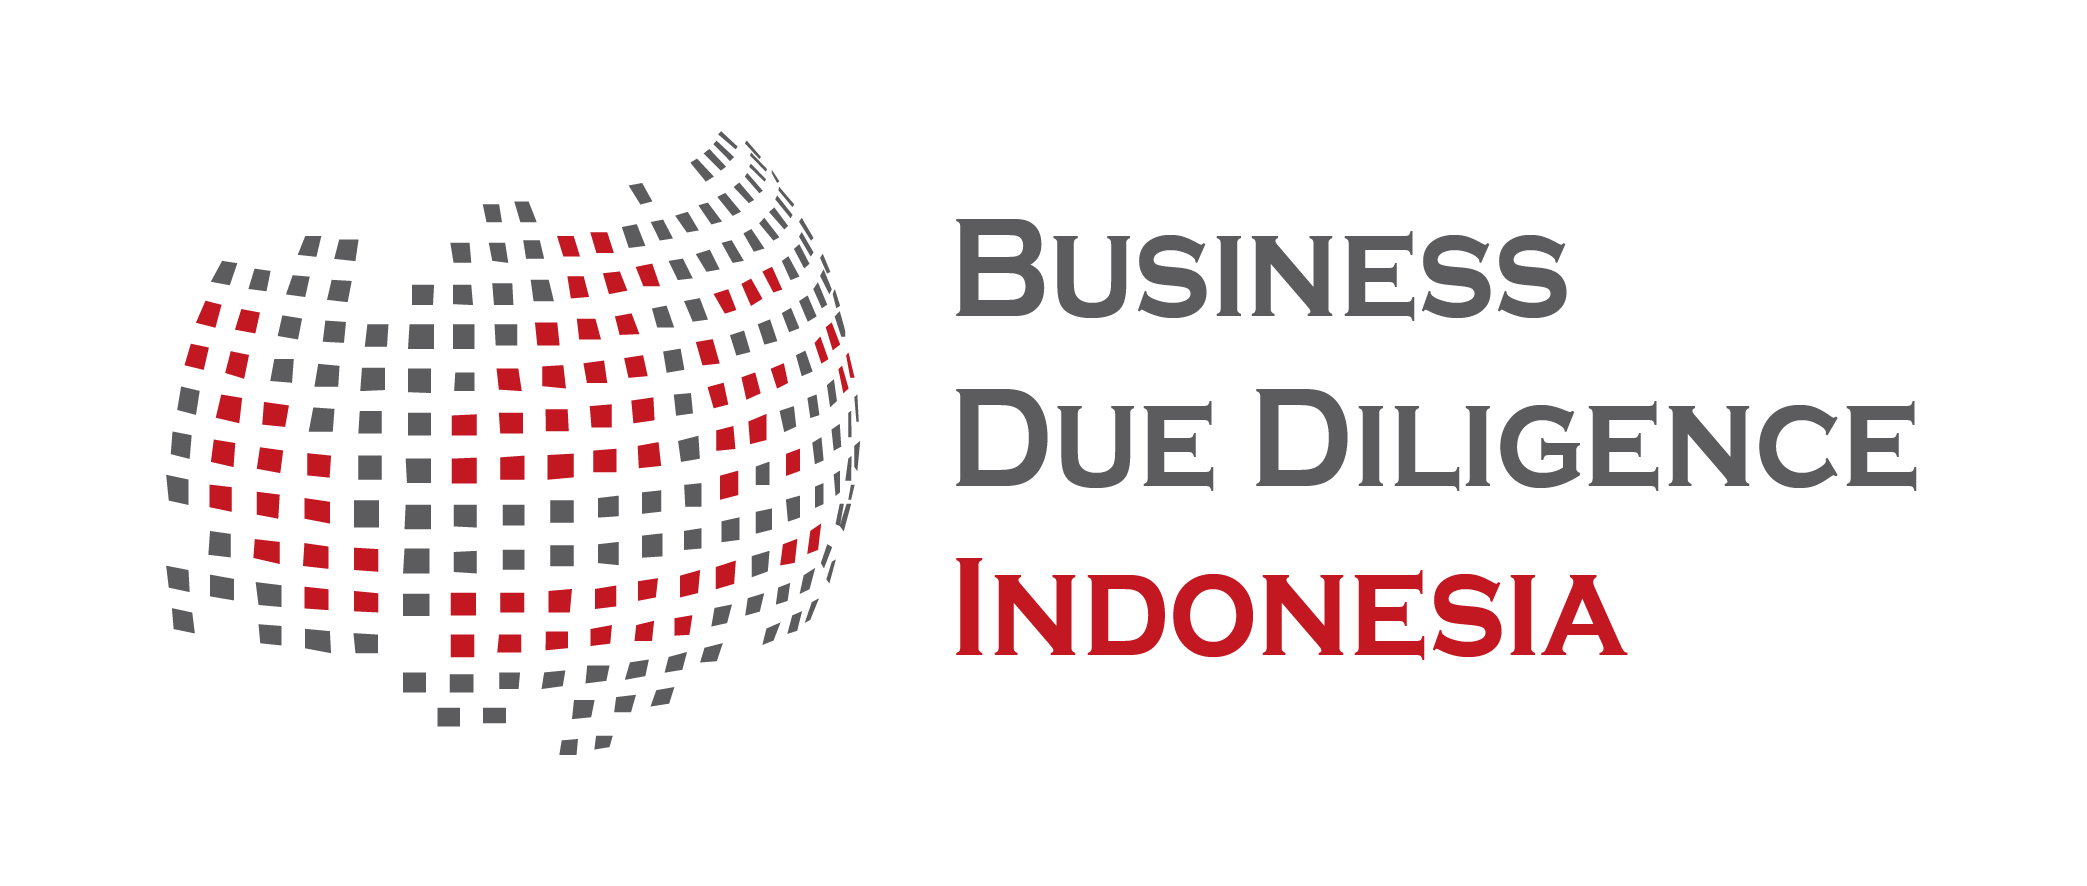 Business Due Diligence Indonesia